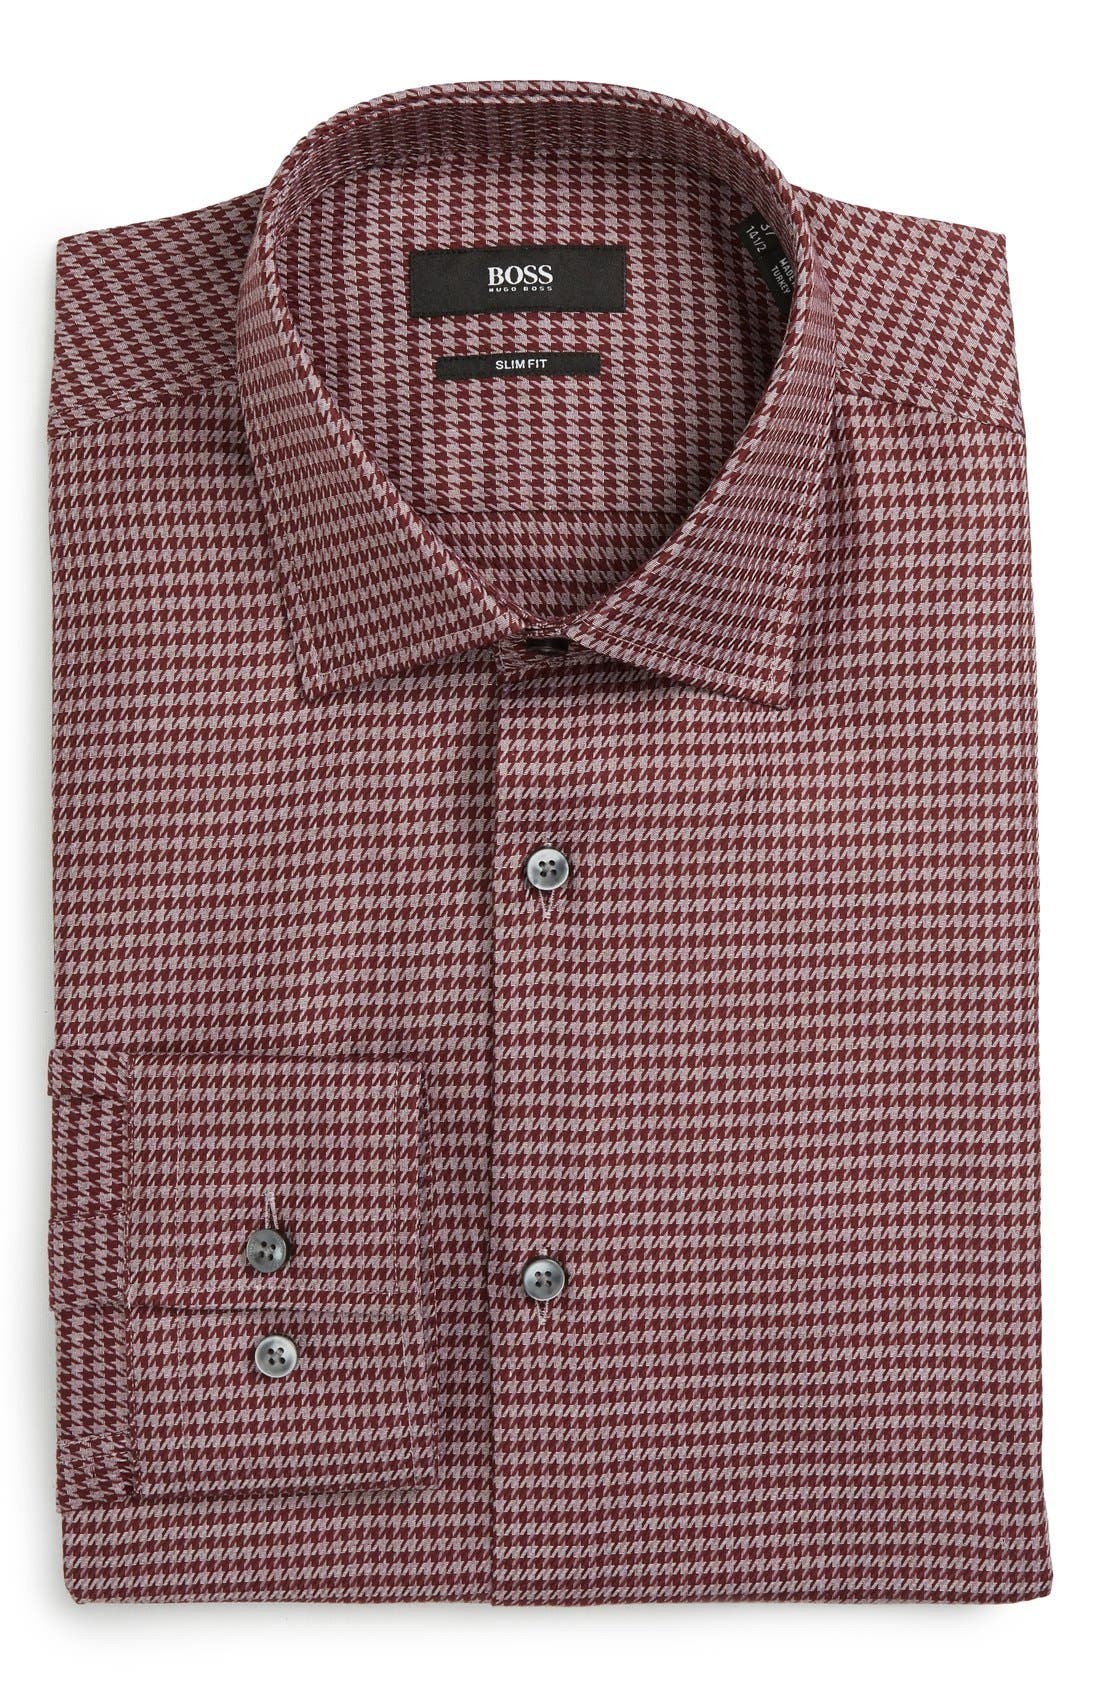 Main Image - BOSS Slim Fit Houndstooth Dress Shirt